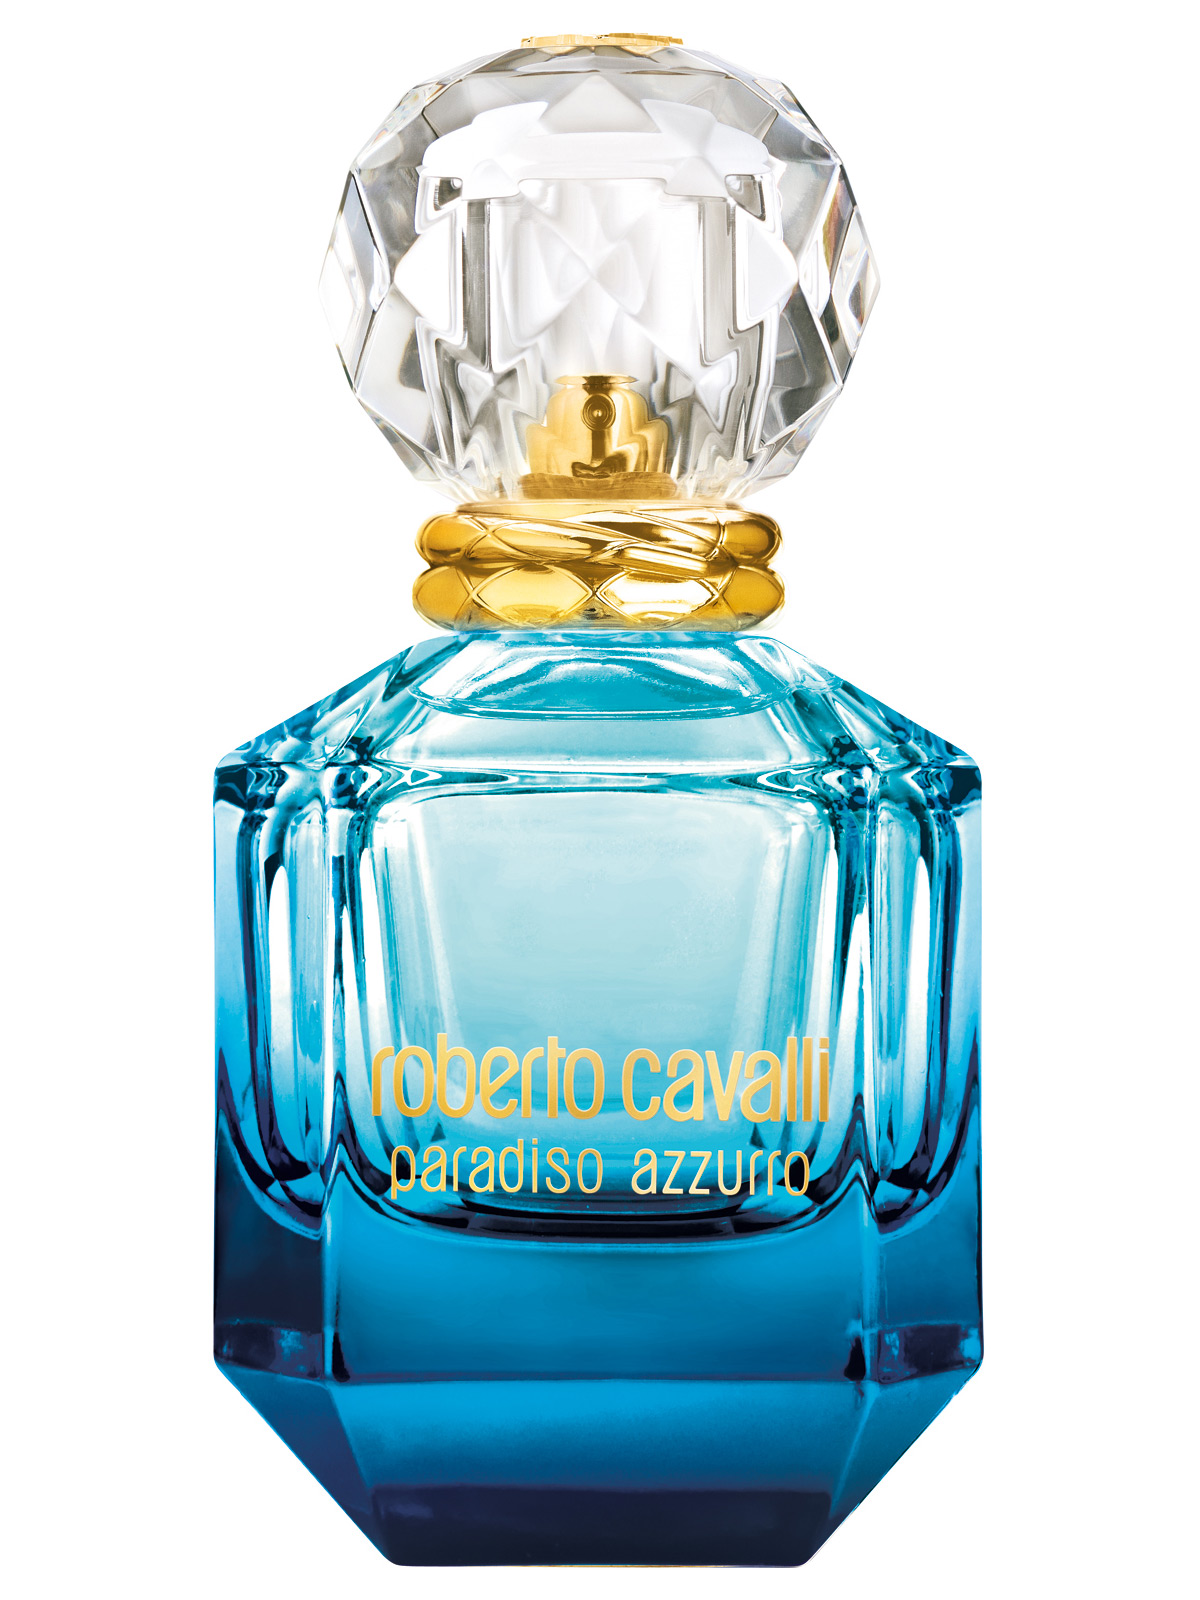 paradiso azzurro roberto cavalli perfume a new fragrance. Black Bedroom Furniture Sets. Home Design Ideas